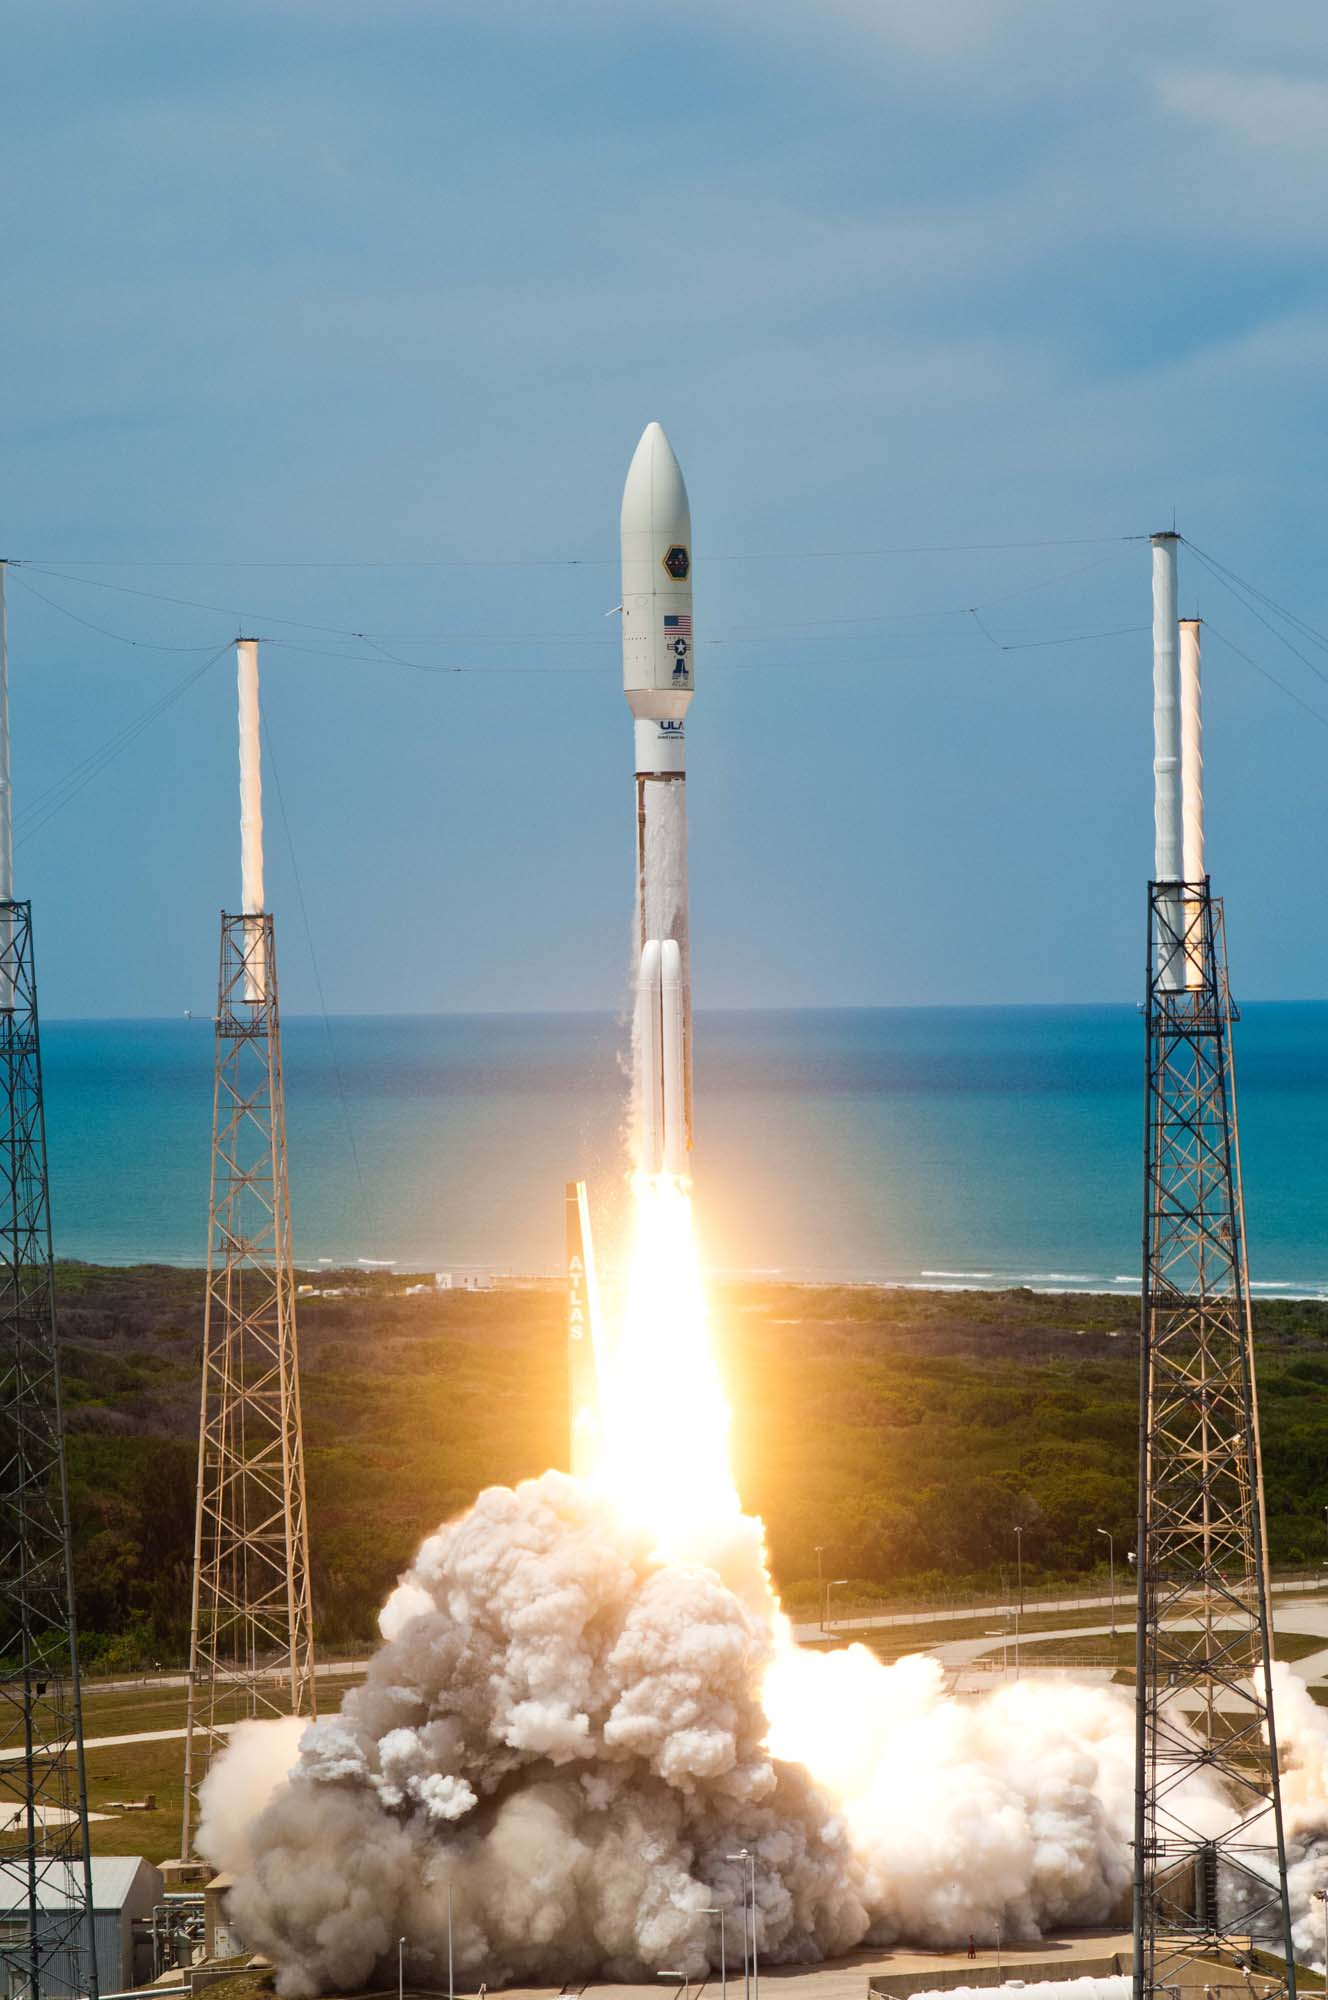 Atlas 5 Rocket Launches the AEHF-2 Satellite